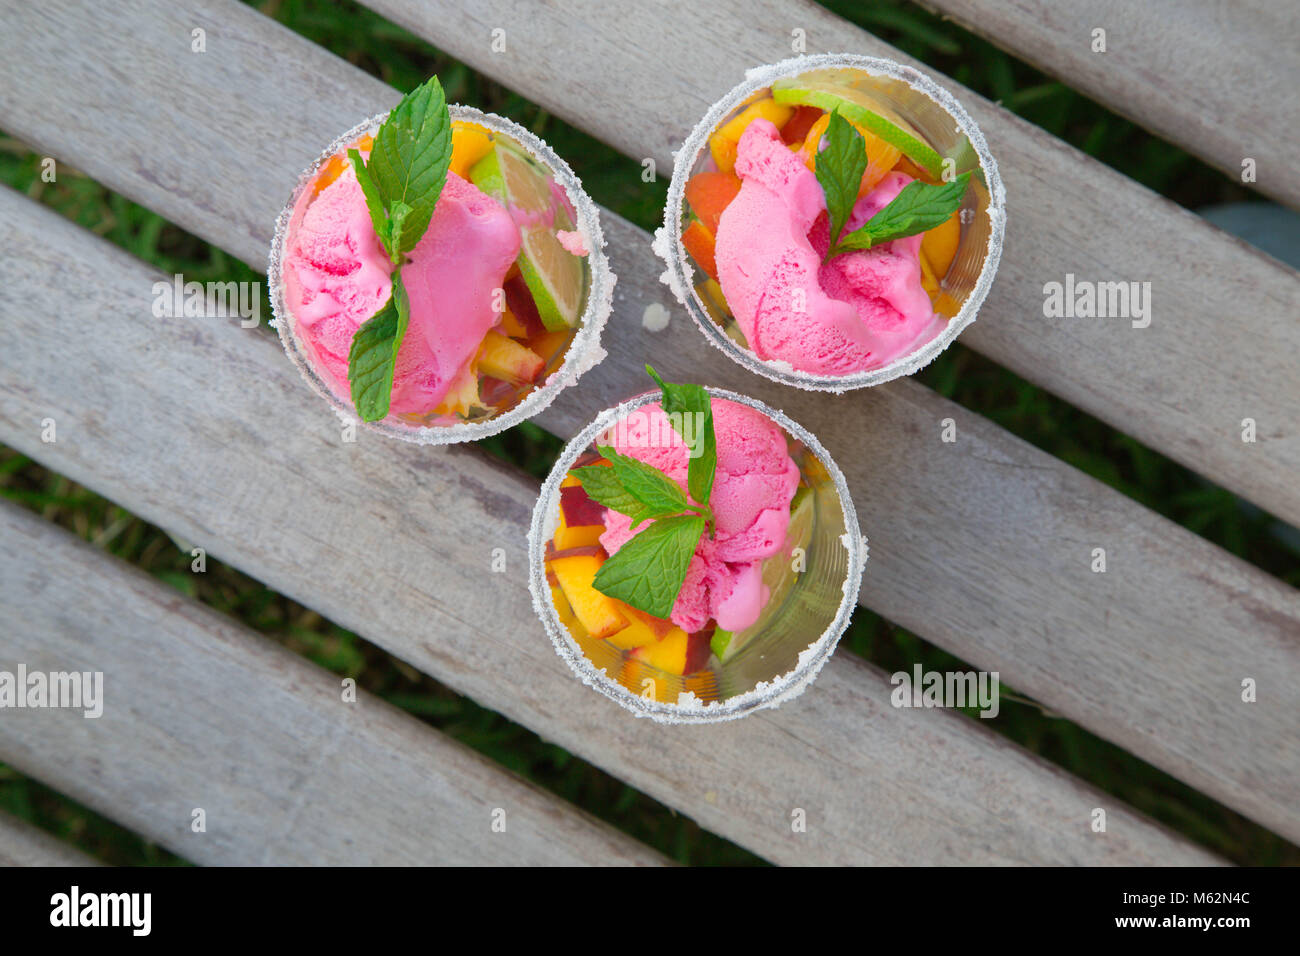 Three glasses with fruit salad and strawberry ice cream on the wooden surface. Top view Stock Photo